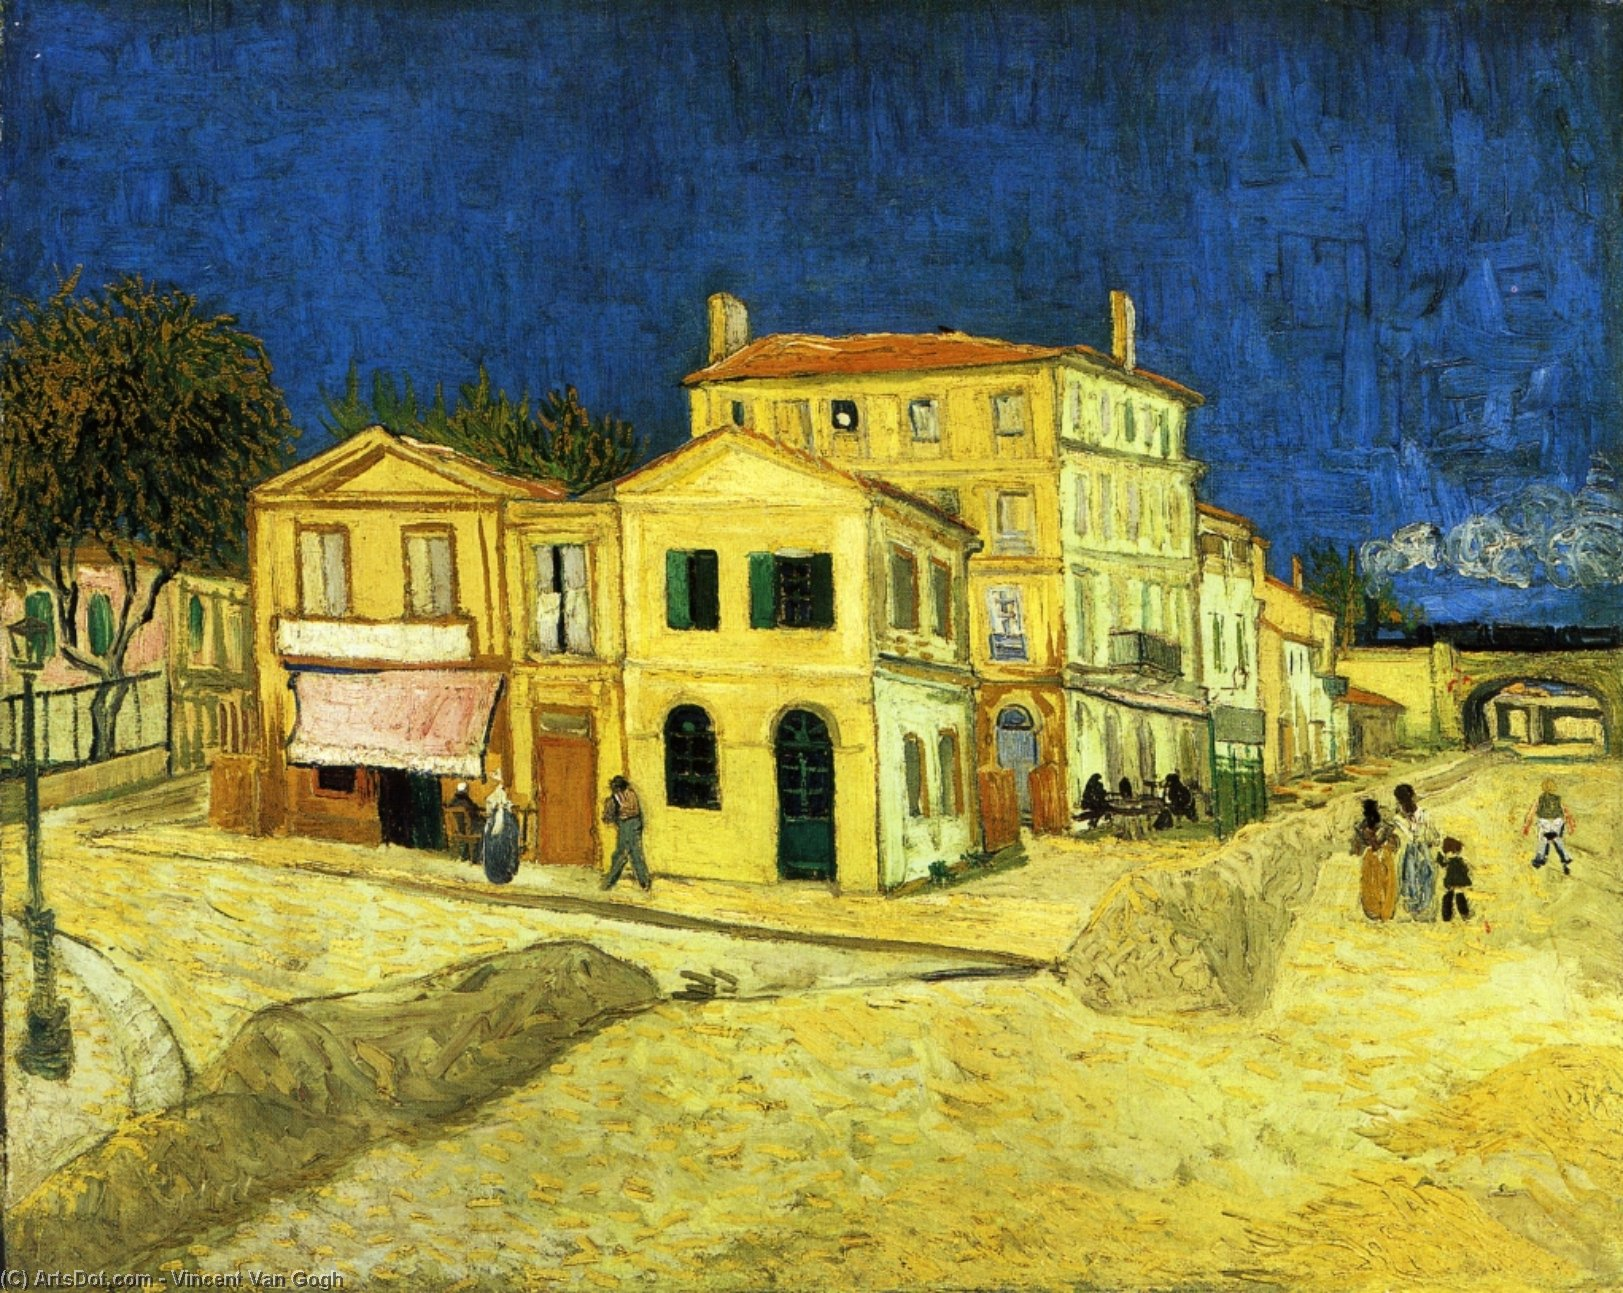 WikiOO.org - Encyclopedia of Fine Arts - Målning, konstverk Vincent Van Gogh - The Street, the Yellow House